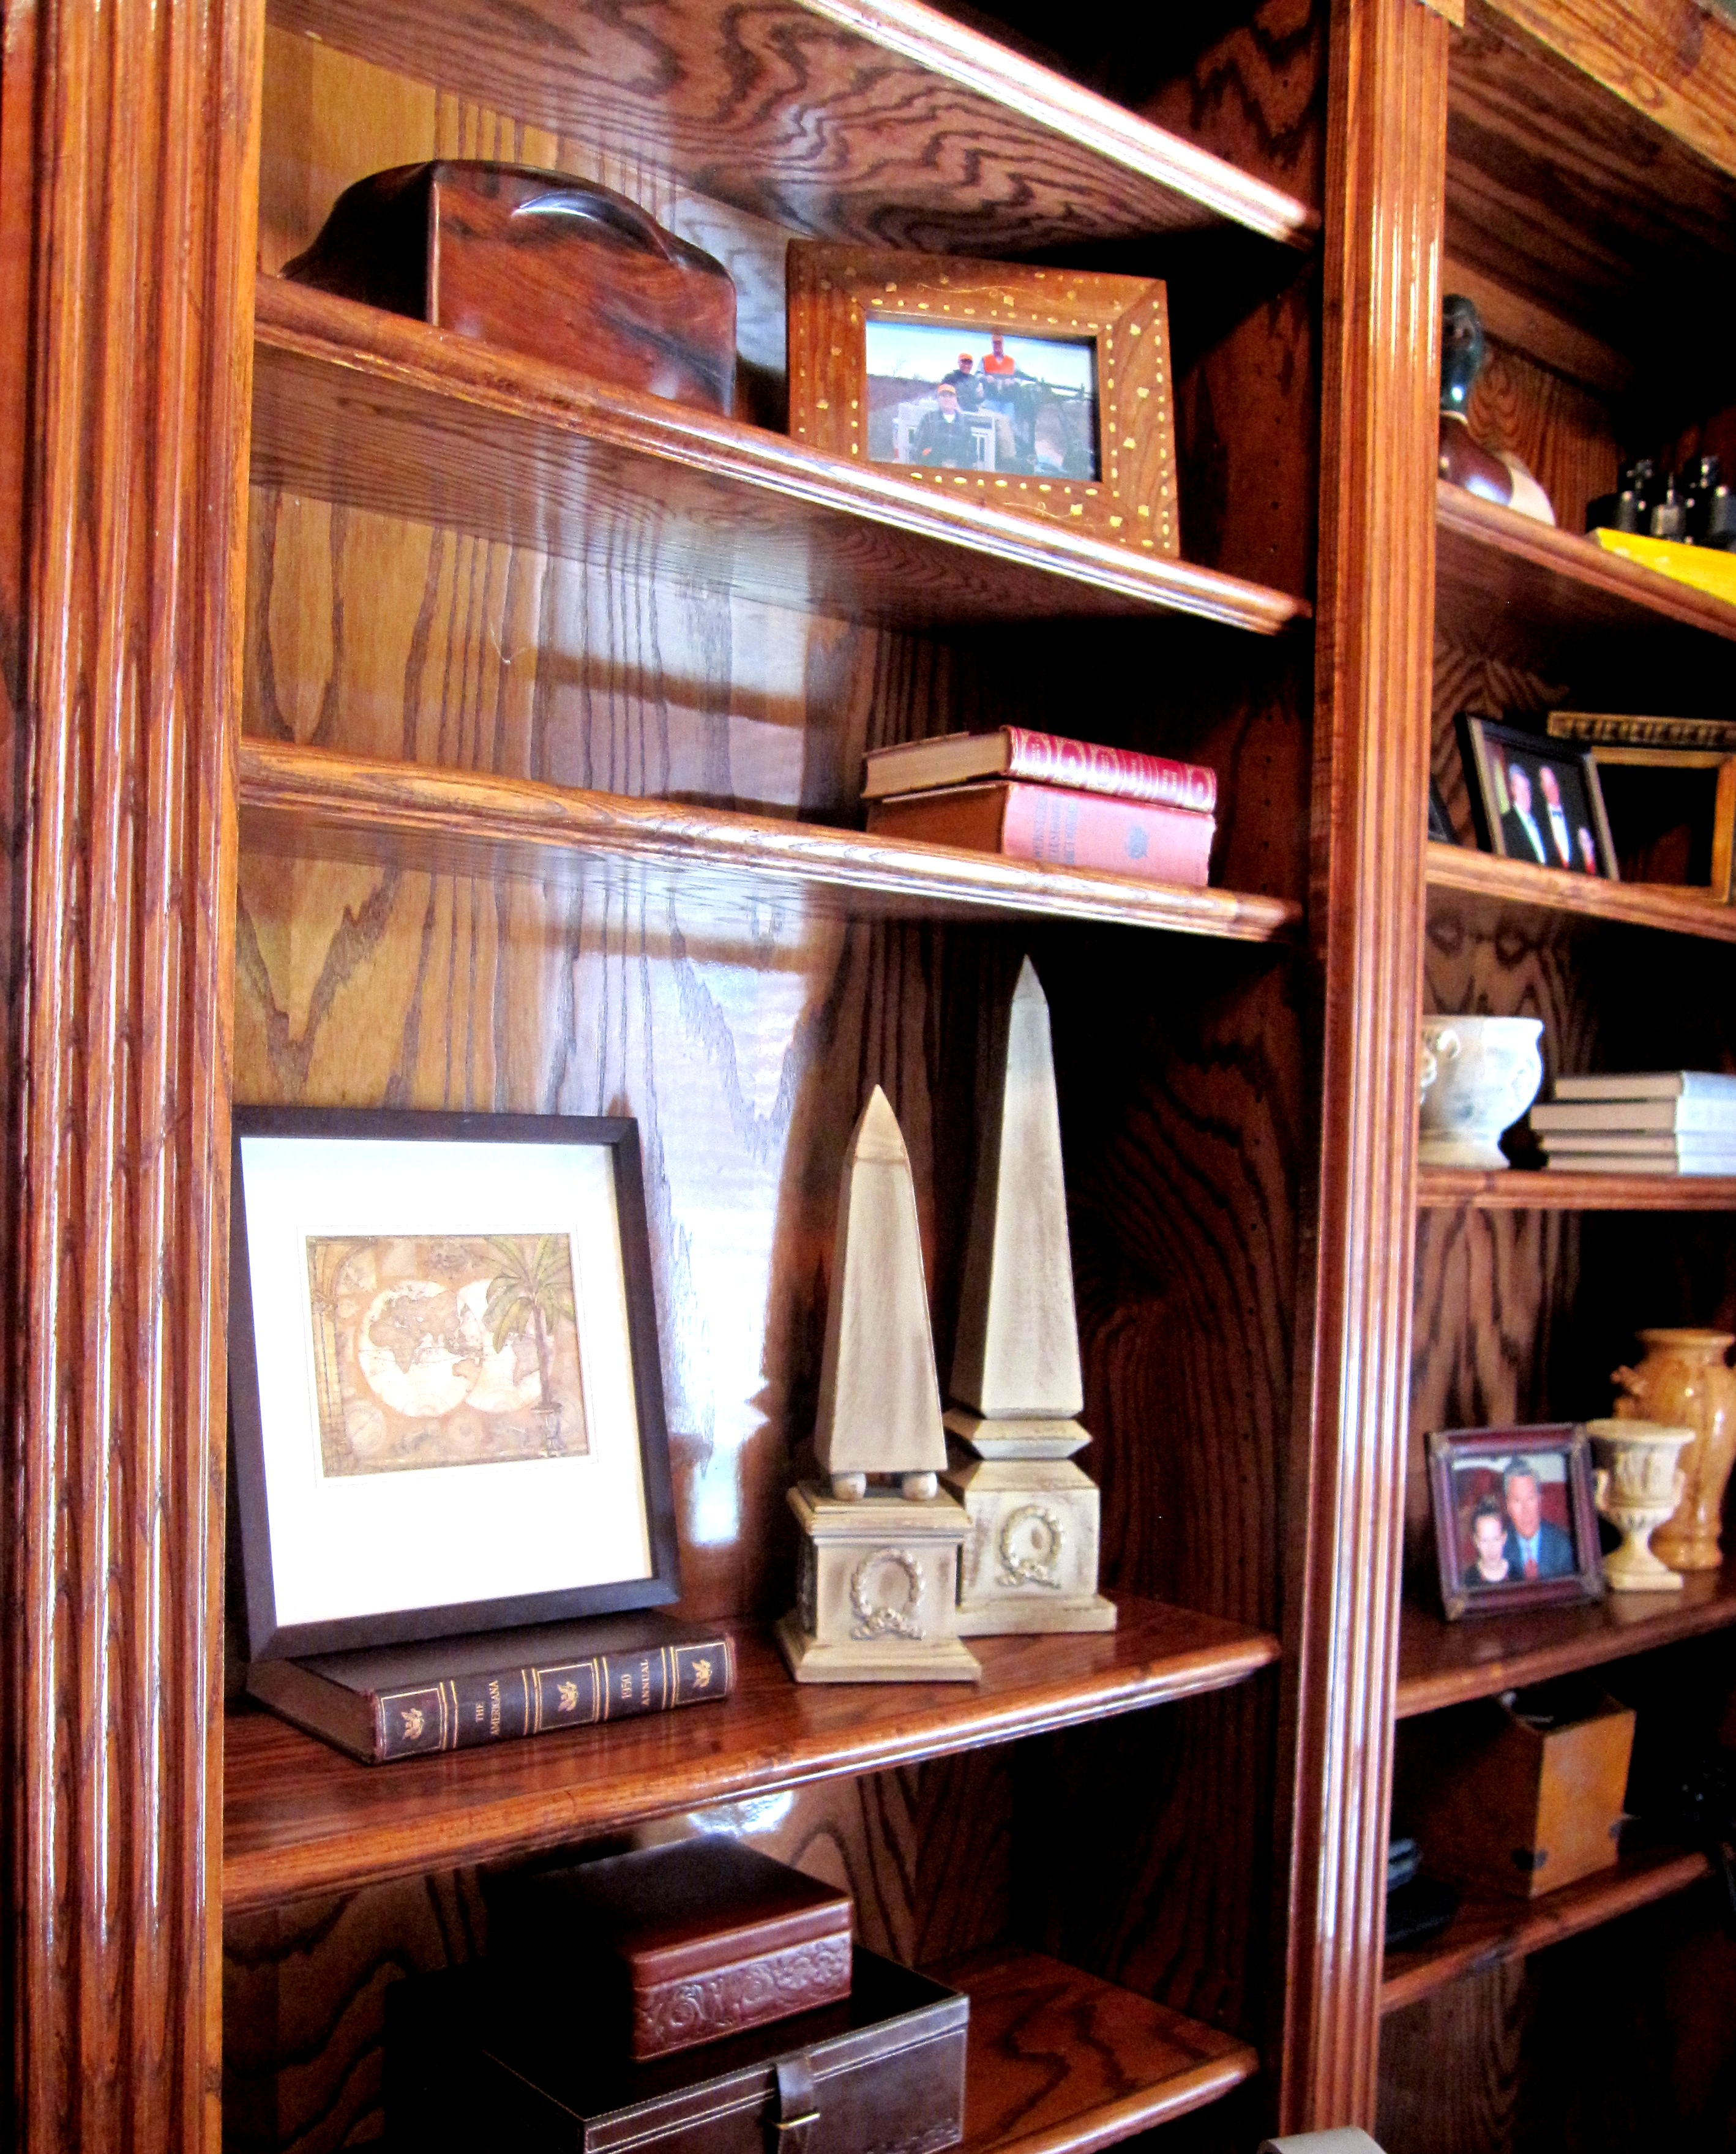 Home Star Staging Staging Bookshelves For Selling Home Star Staging